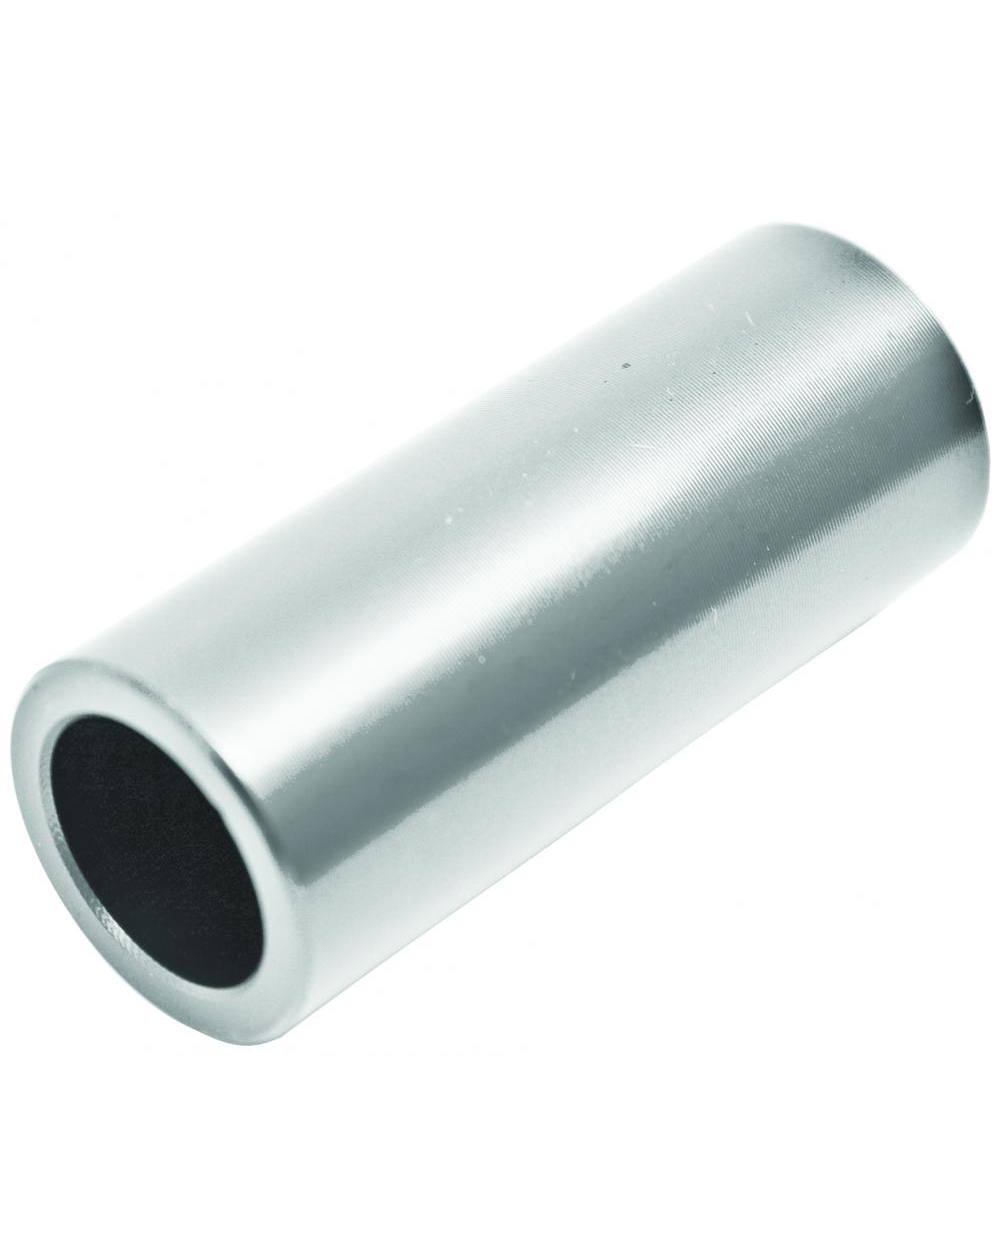 Blazer Pro Alloy Scooter Pegs Silver pack of 2